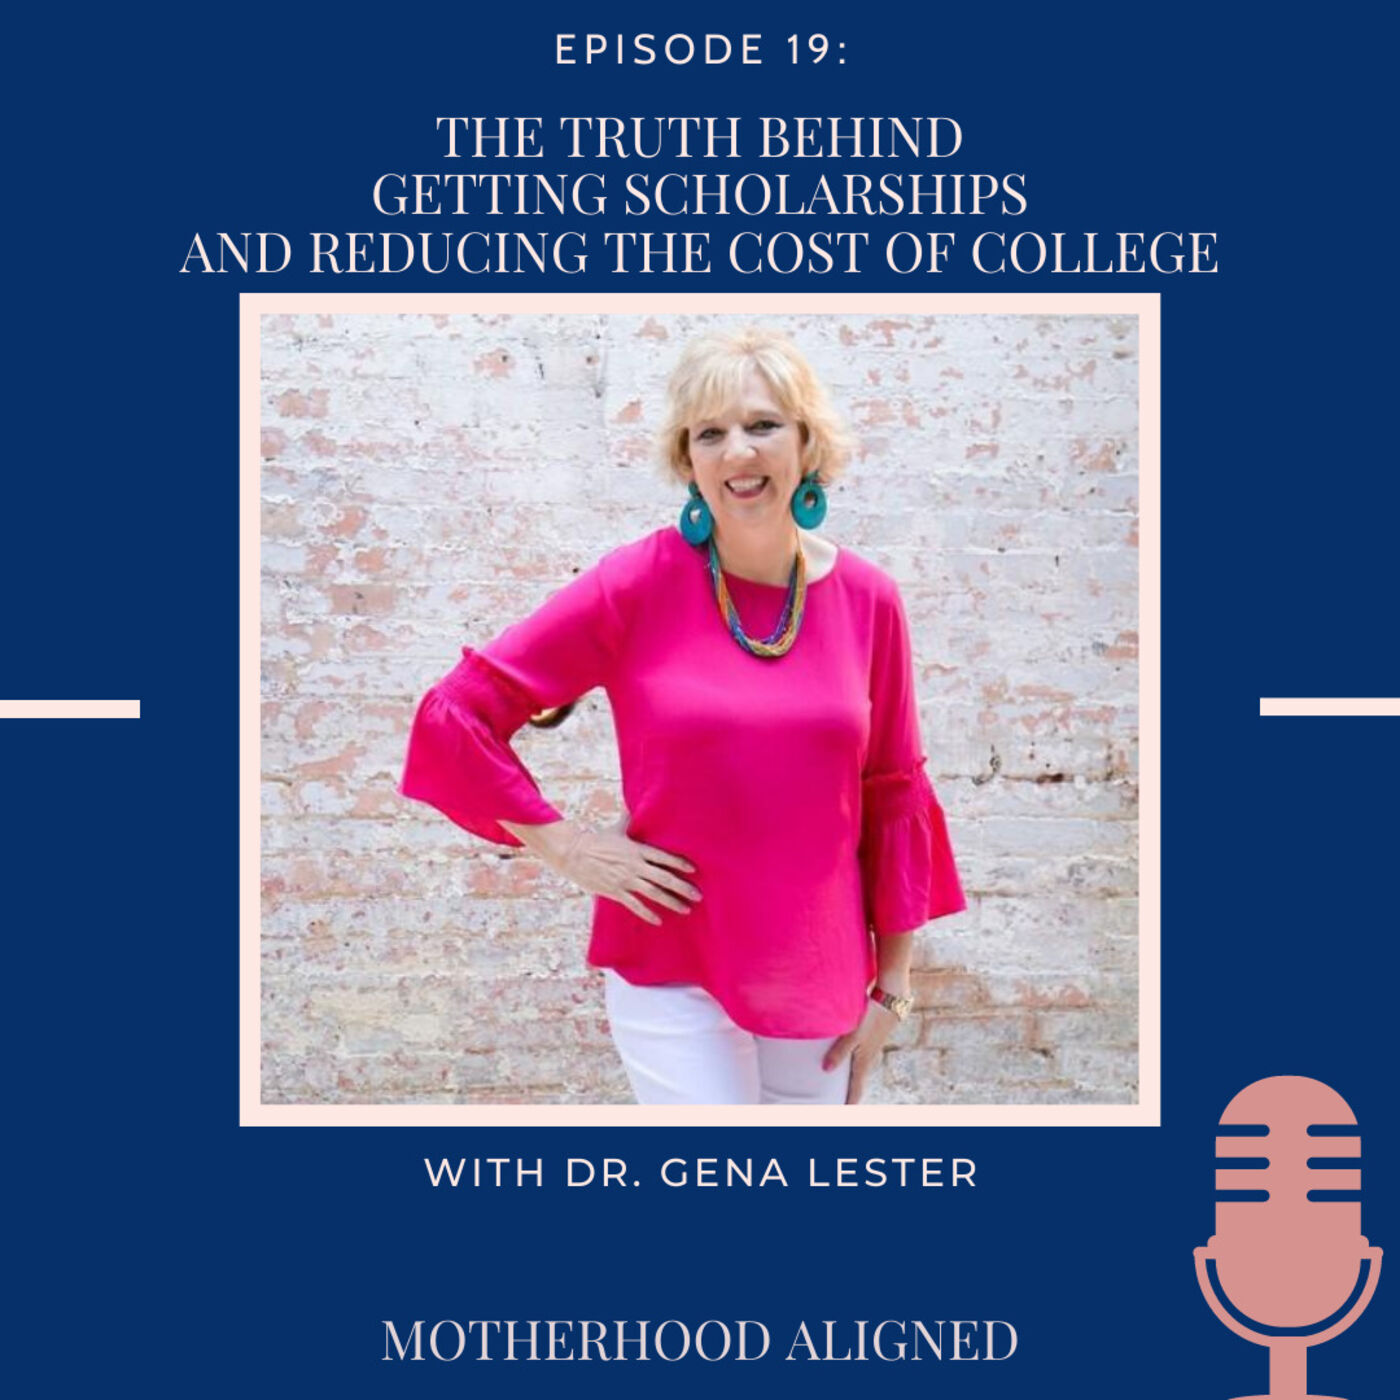 The Truth Behind Getting Scholarships and  Reducing the Cost of College with Dr. Gena Lester